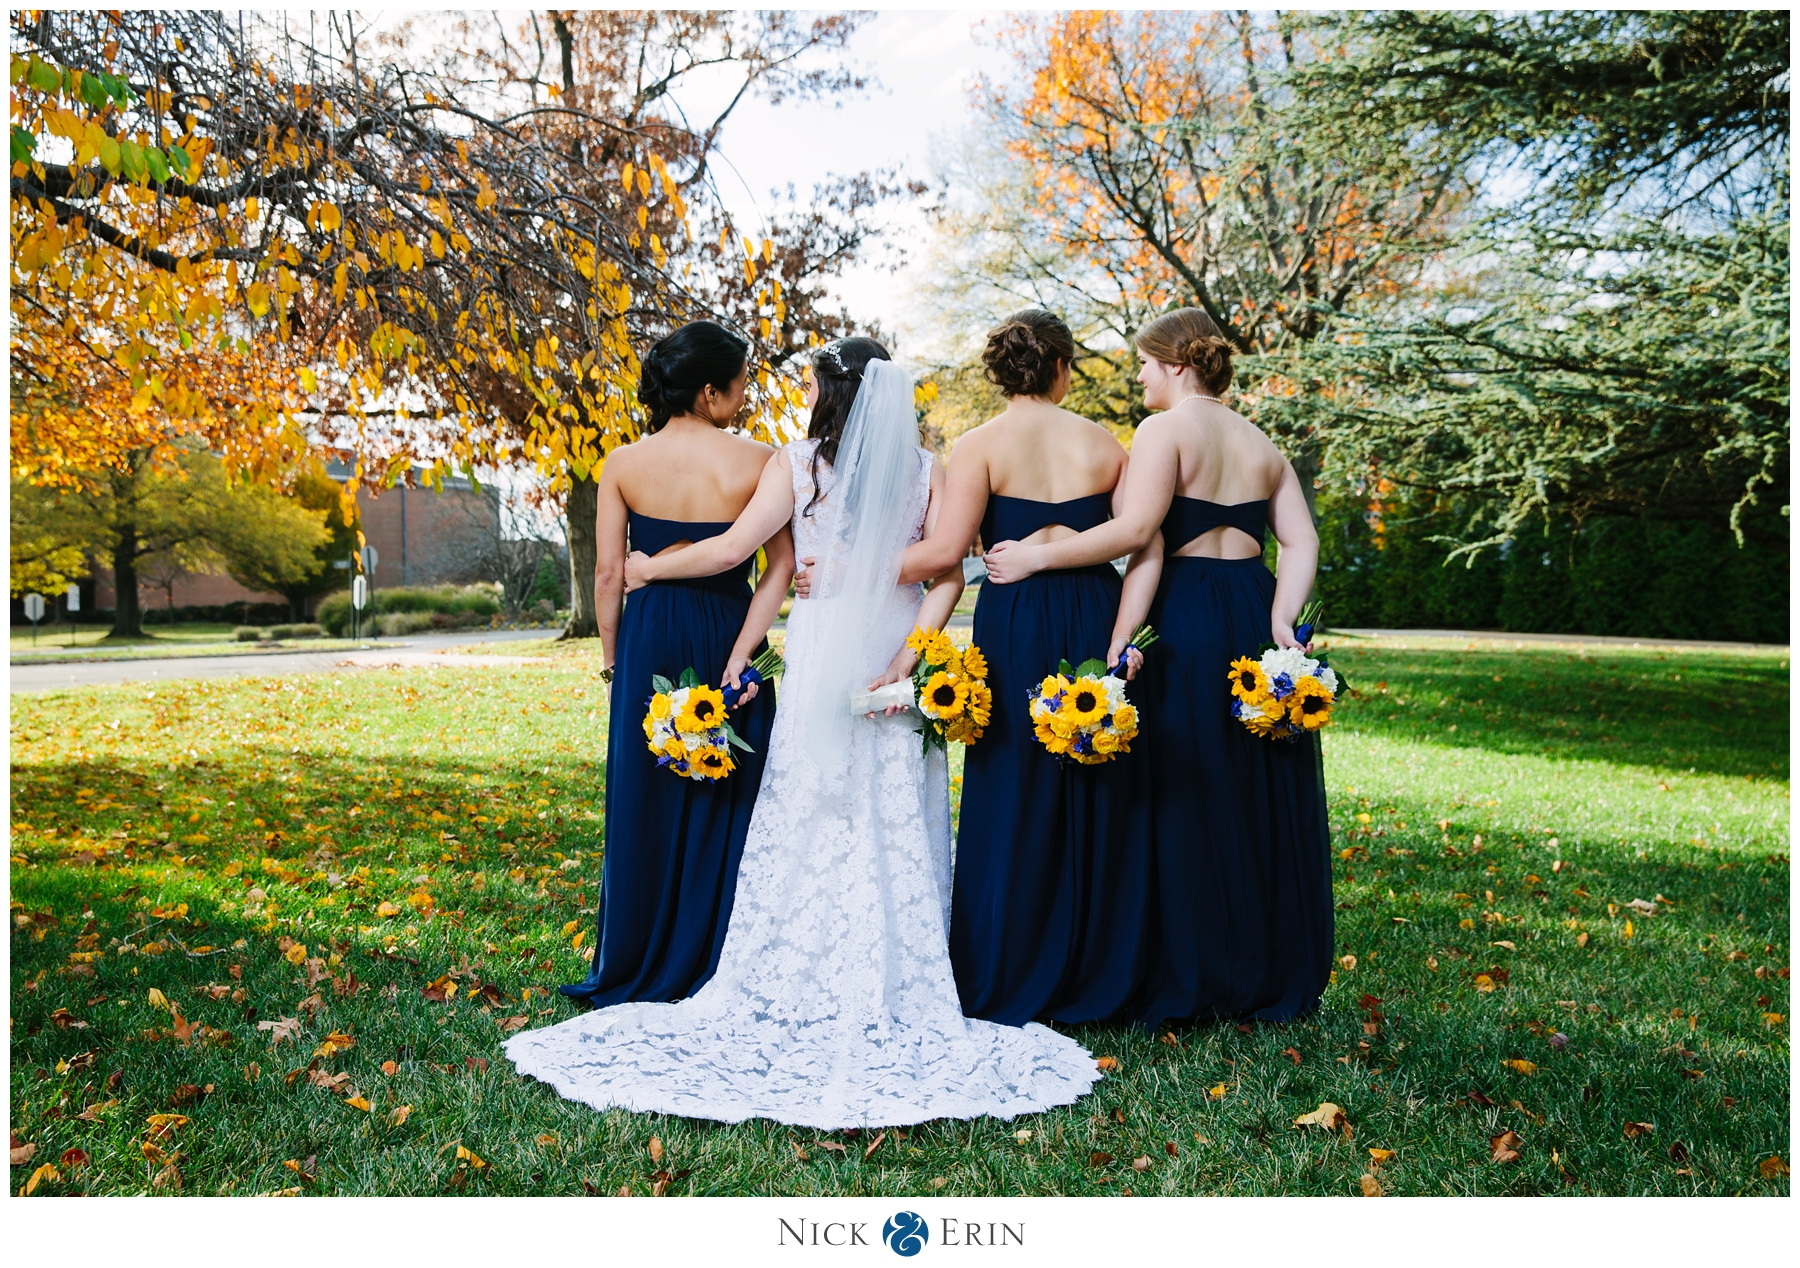 Donner_Photography_Fort Myer Wedding_Katie & Will_0029